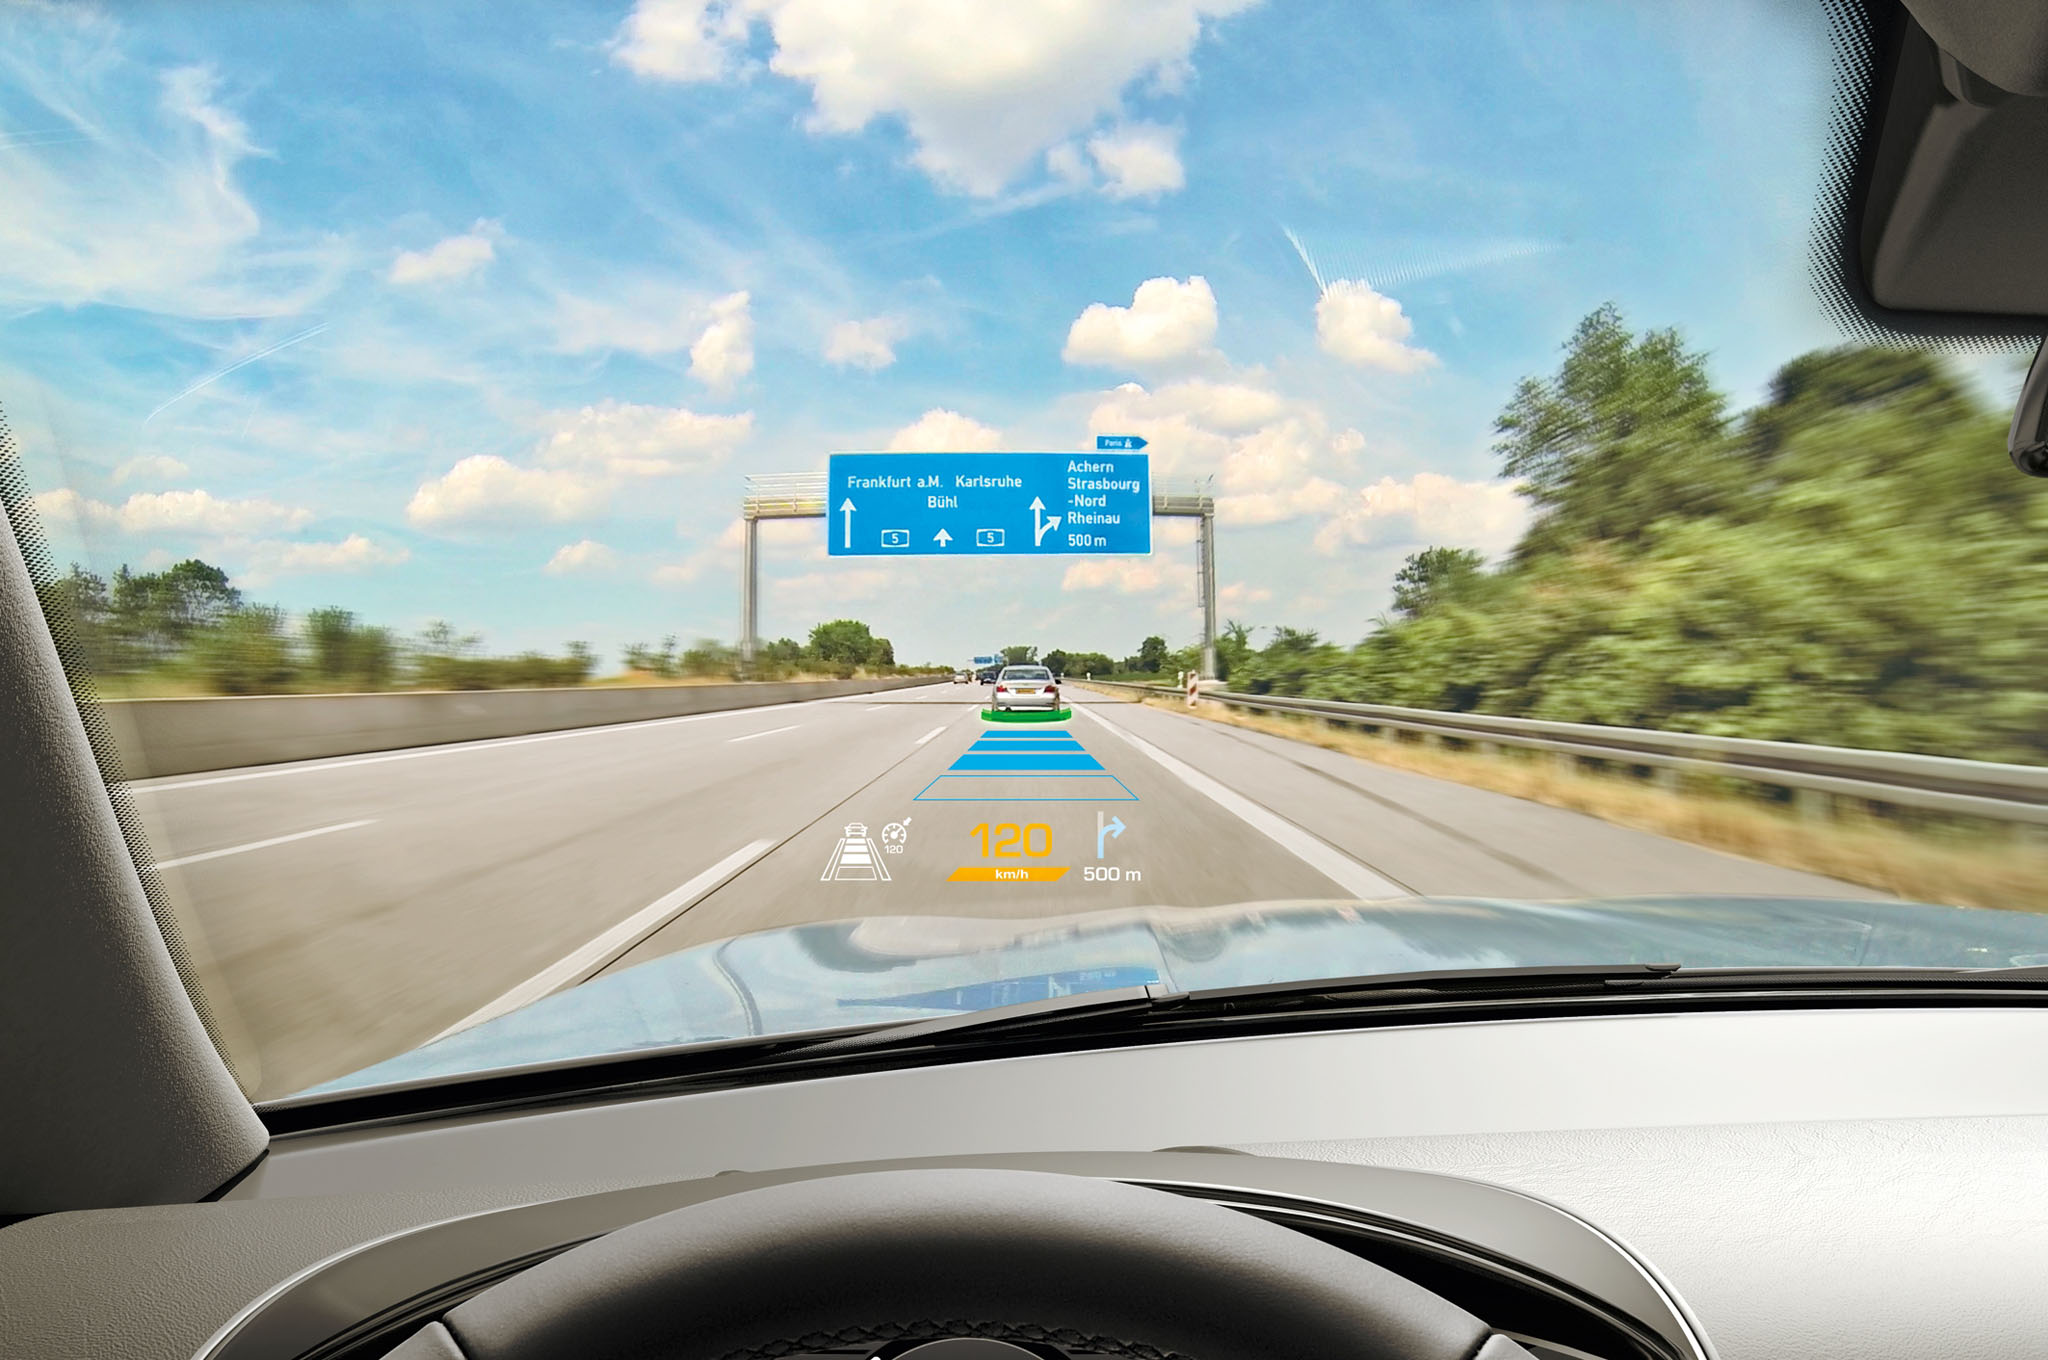 Continental Shows off New Augmented Reality HUD Technology